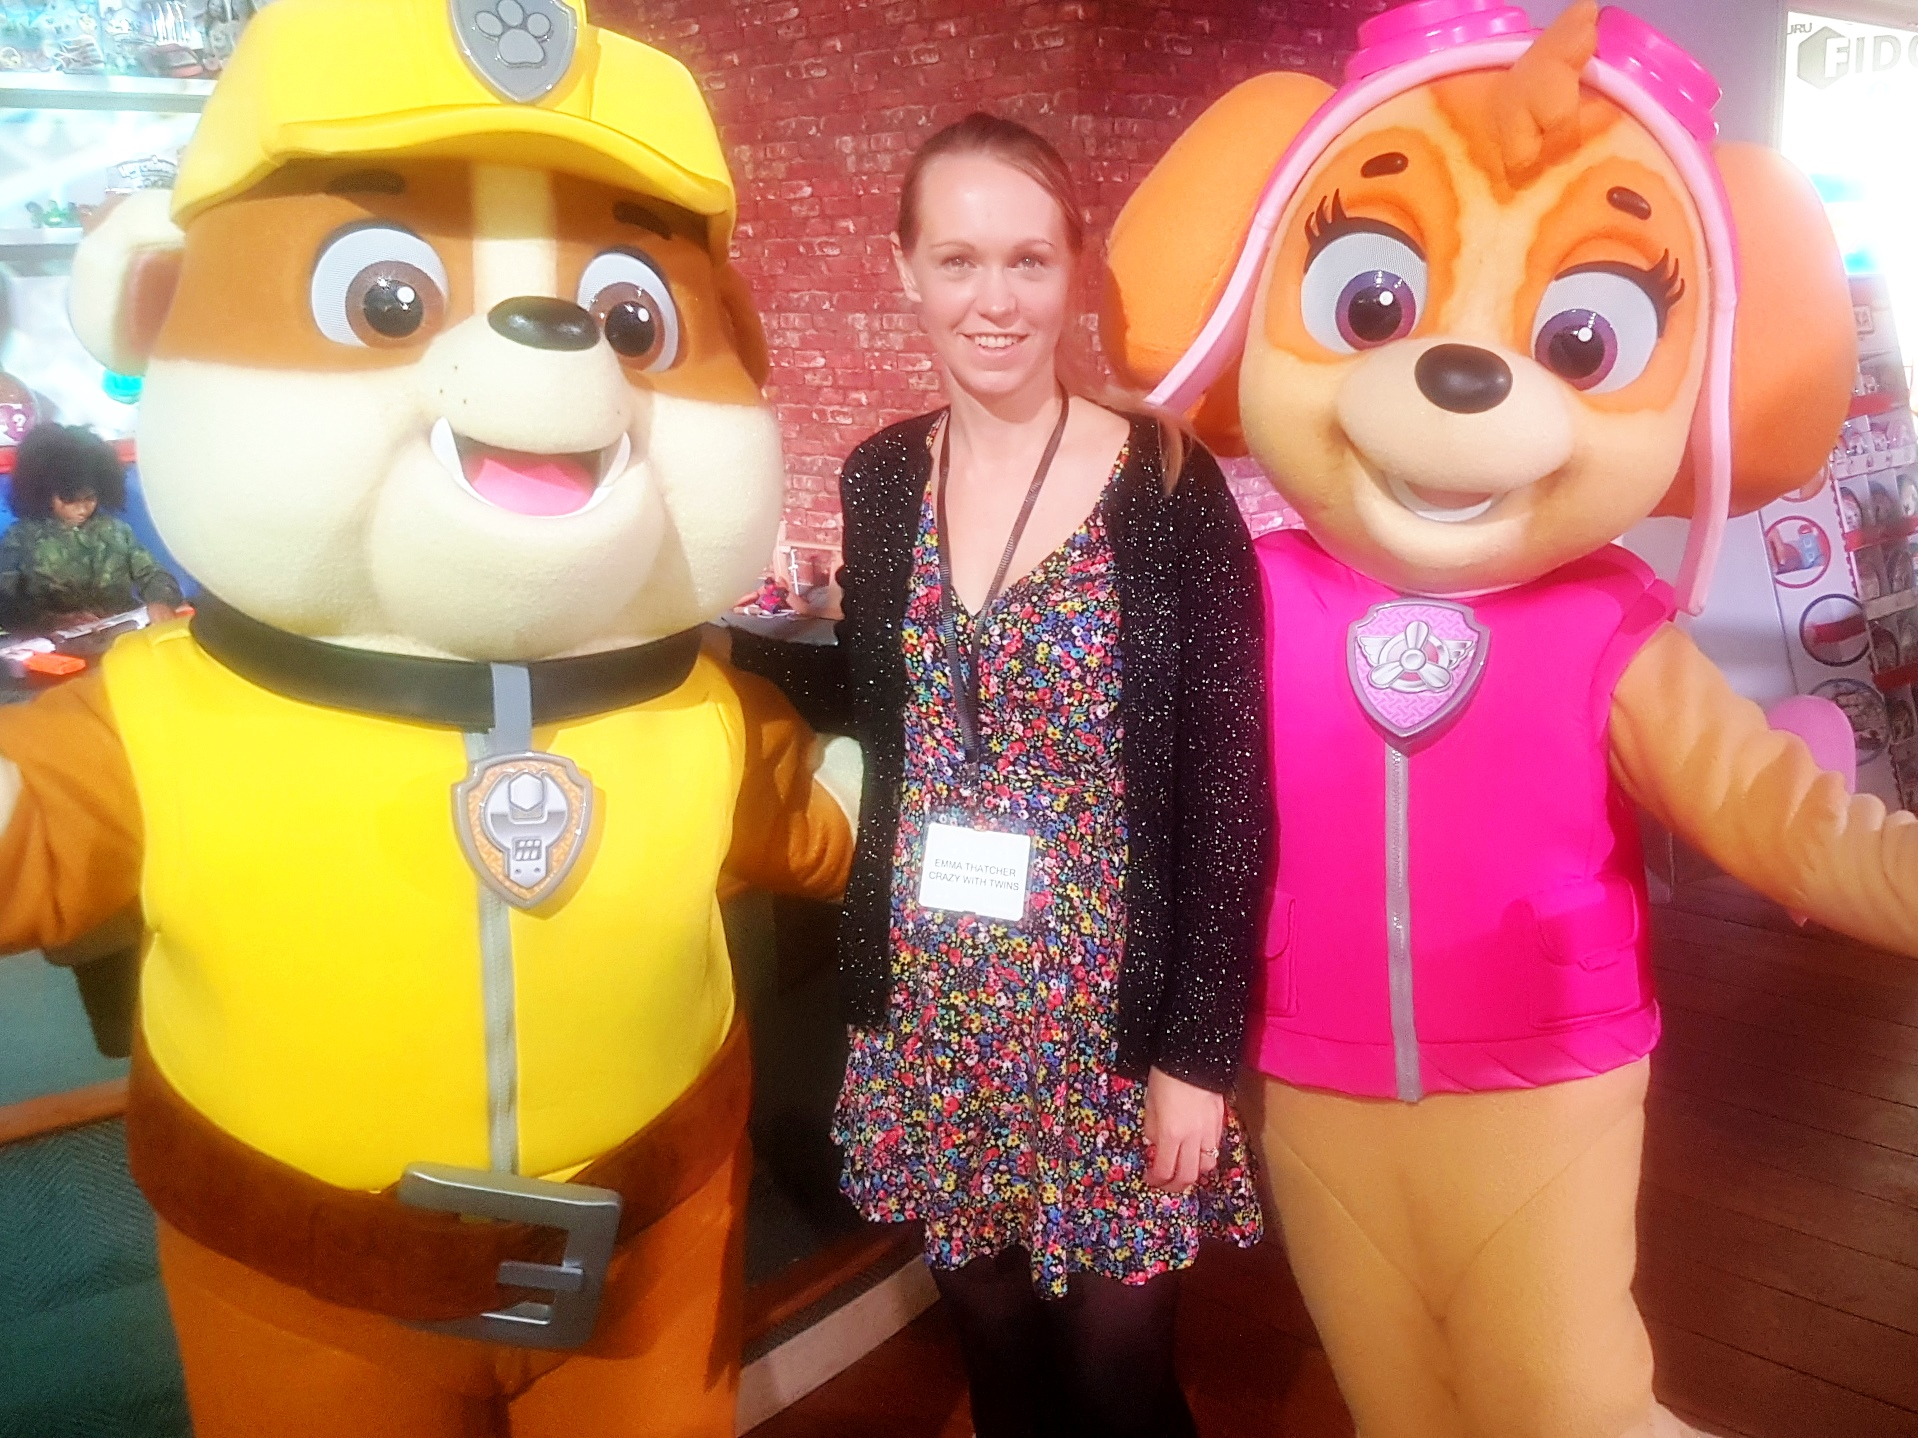 Rubble and Skye, Paw Patrol, Dream Toys